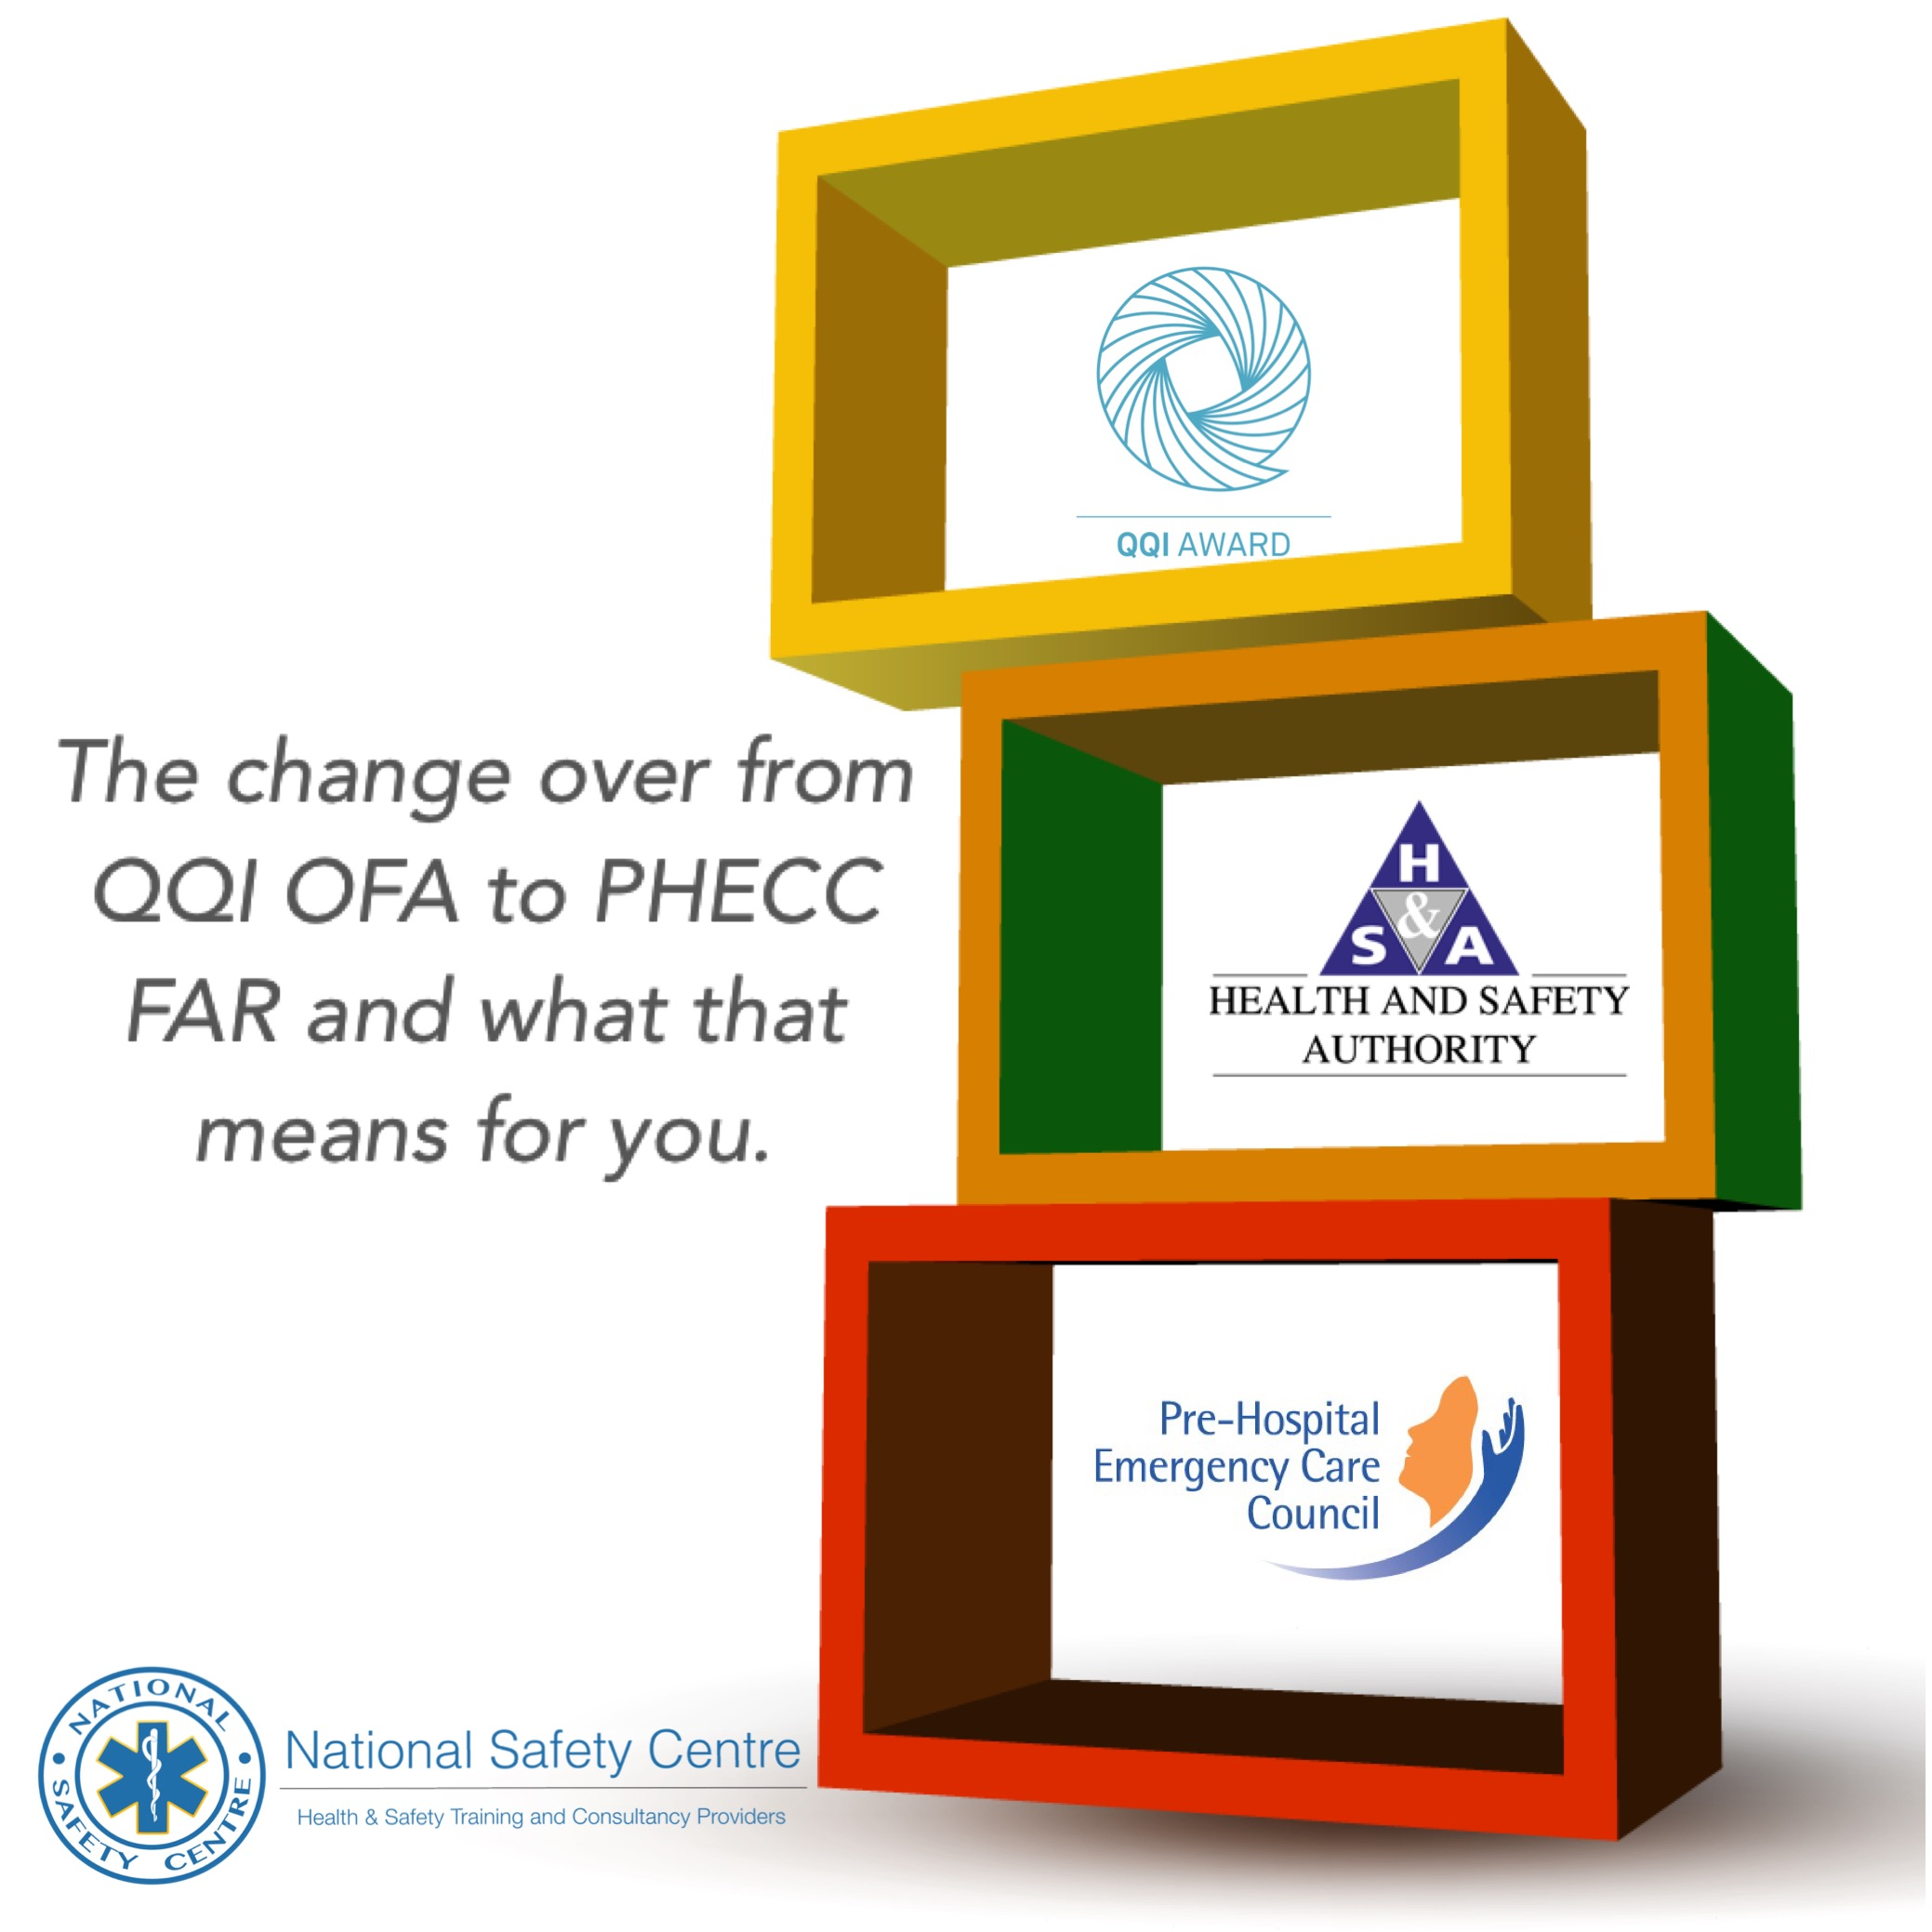 Transition of Occupational First Aid to FAR